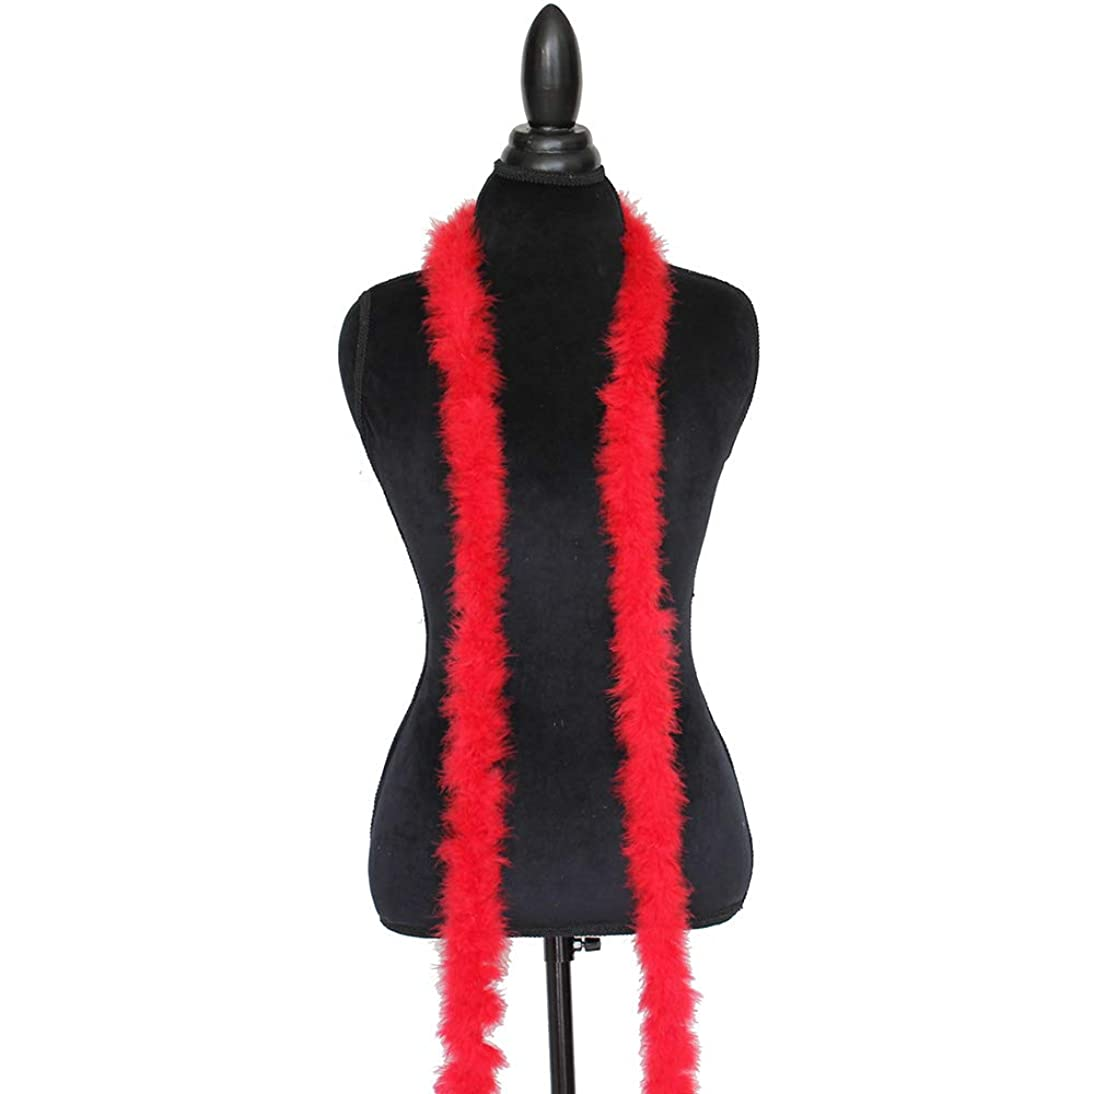 Cynthia's Feathers Marabou Feather Boa 6 Feet Long 15 Grams Crafting Sewing Trim Hair Bows Wedding Halloween (Red)